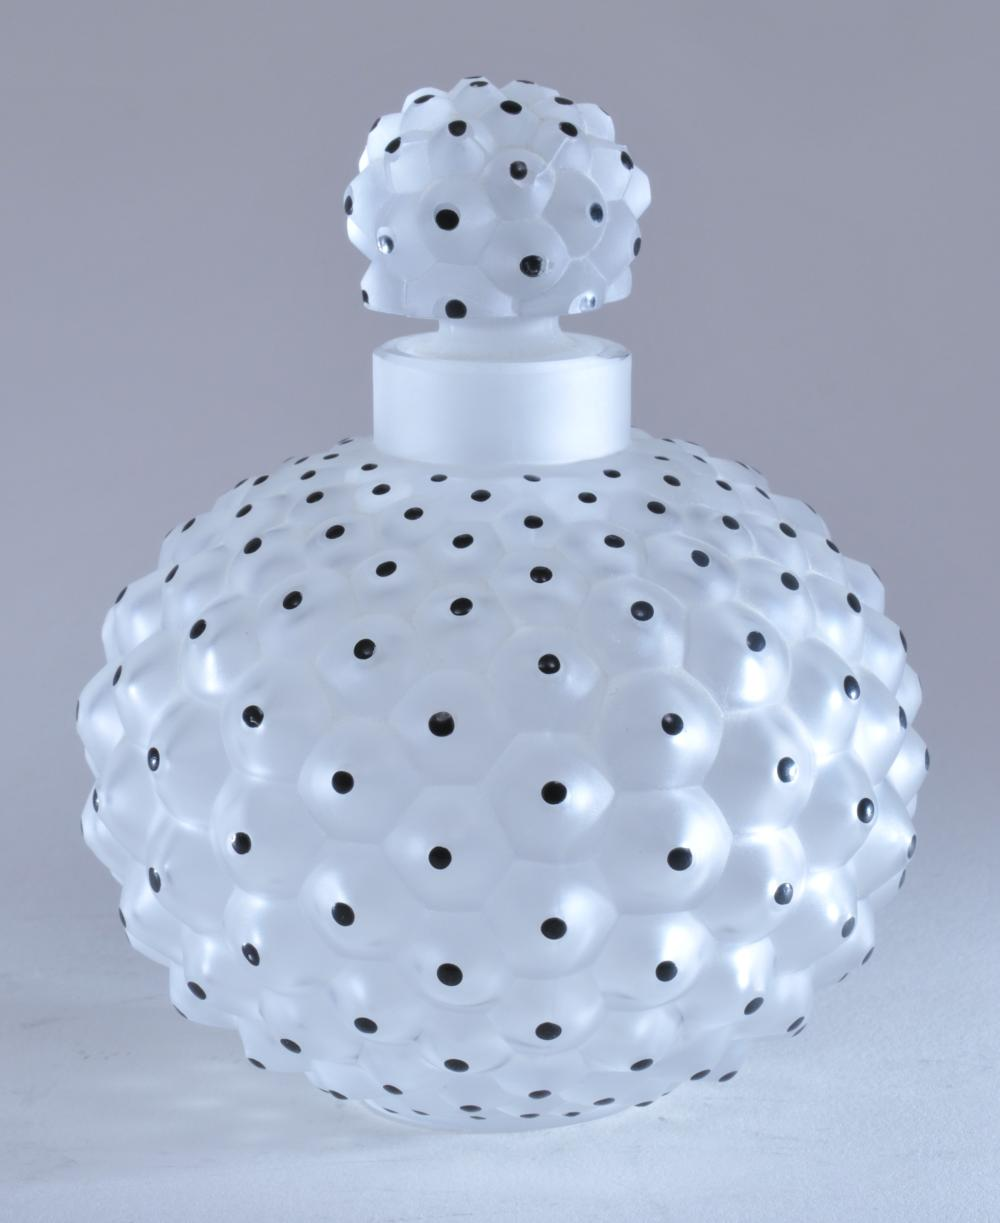 "Lot 26: Lalique glass. France. Frosted covered round perfume bottle with black dot decoration. Signed on base. Good condition. 4-3/4"" high."